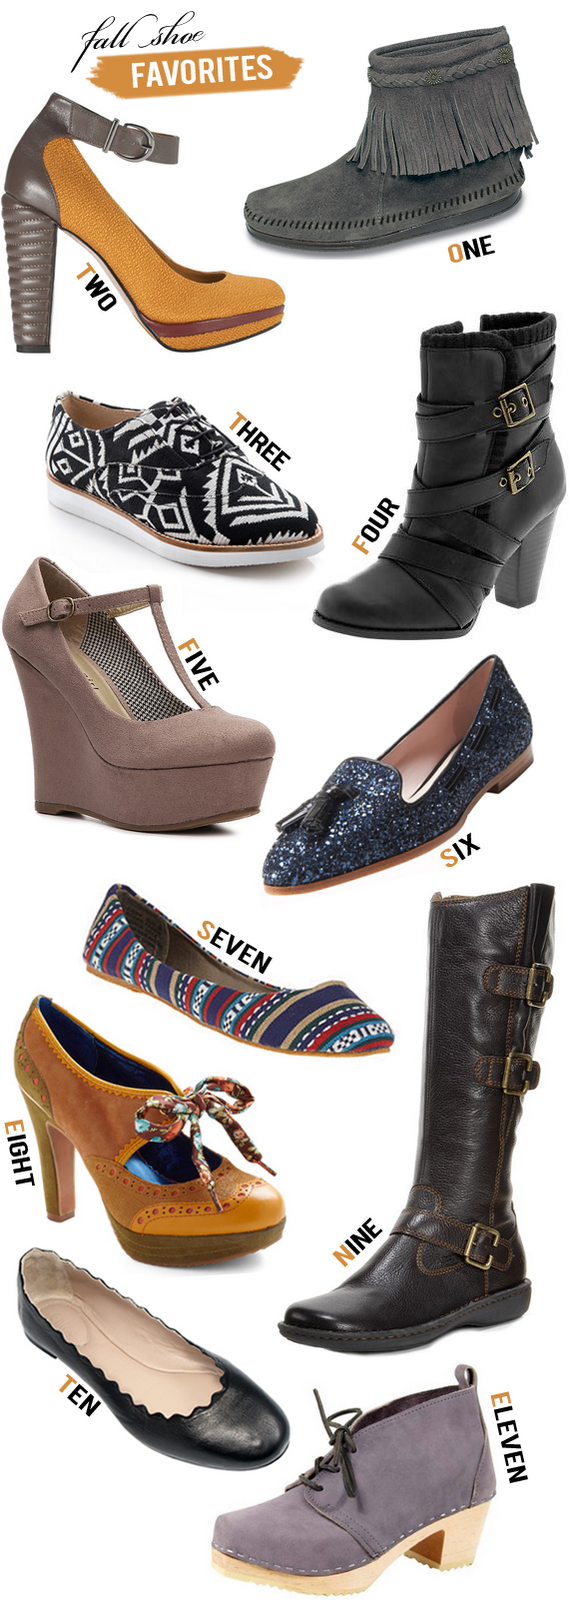 Fall 2012 Shoes